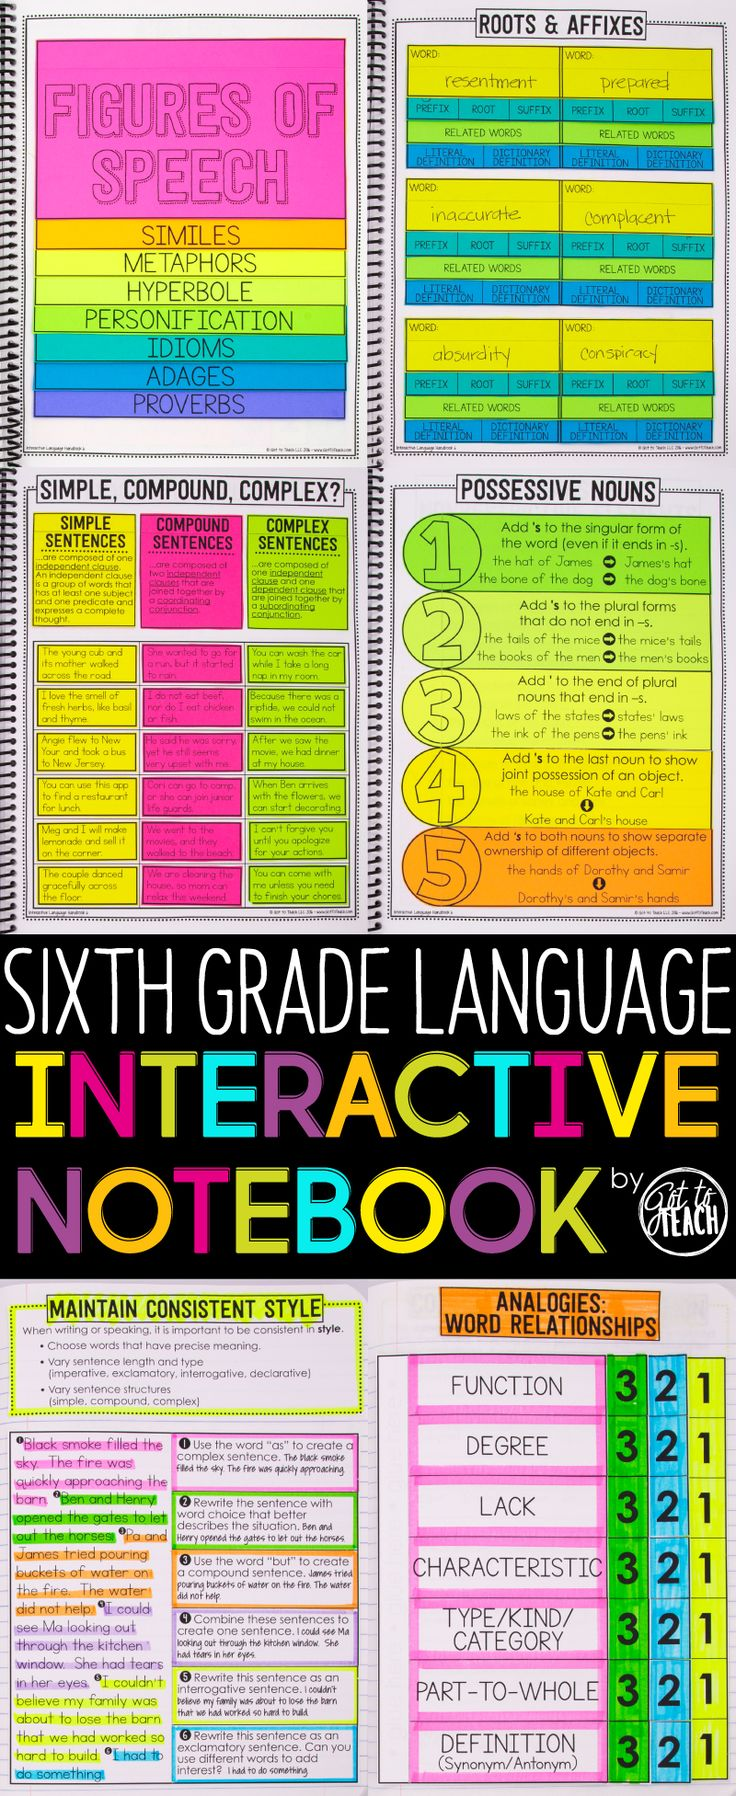 Sixth Grade Language Interactive Notebook. Cover all Common Core Language standards for 6th Grade in an engaging and memorable way. $